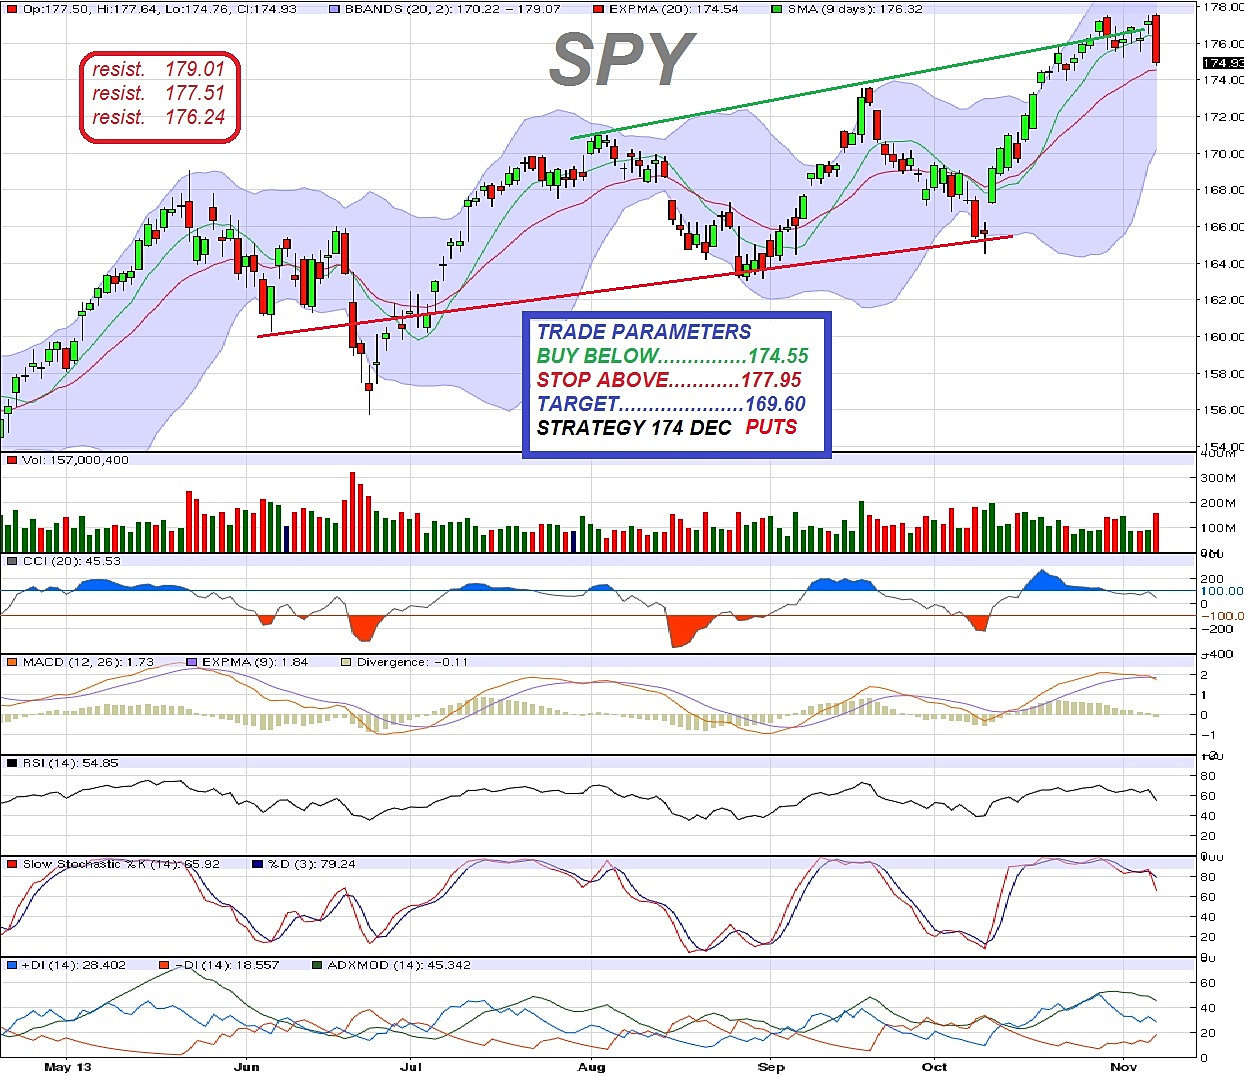 Spy options trading times